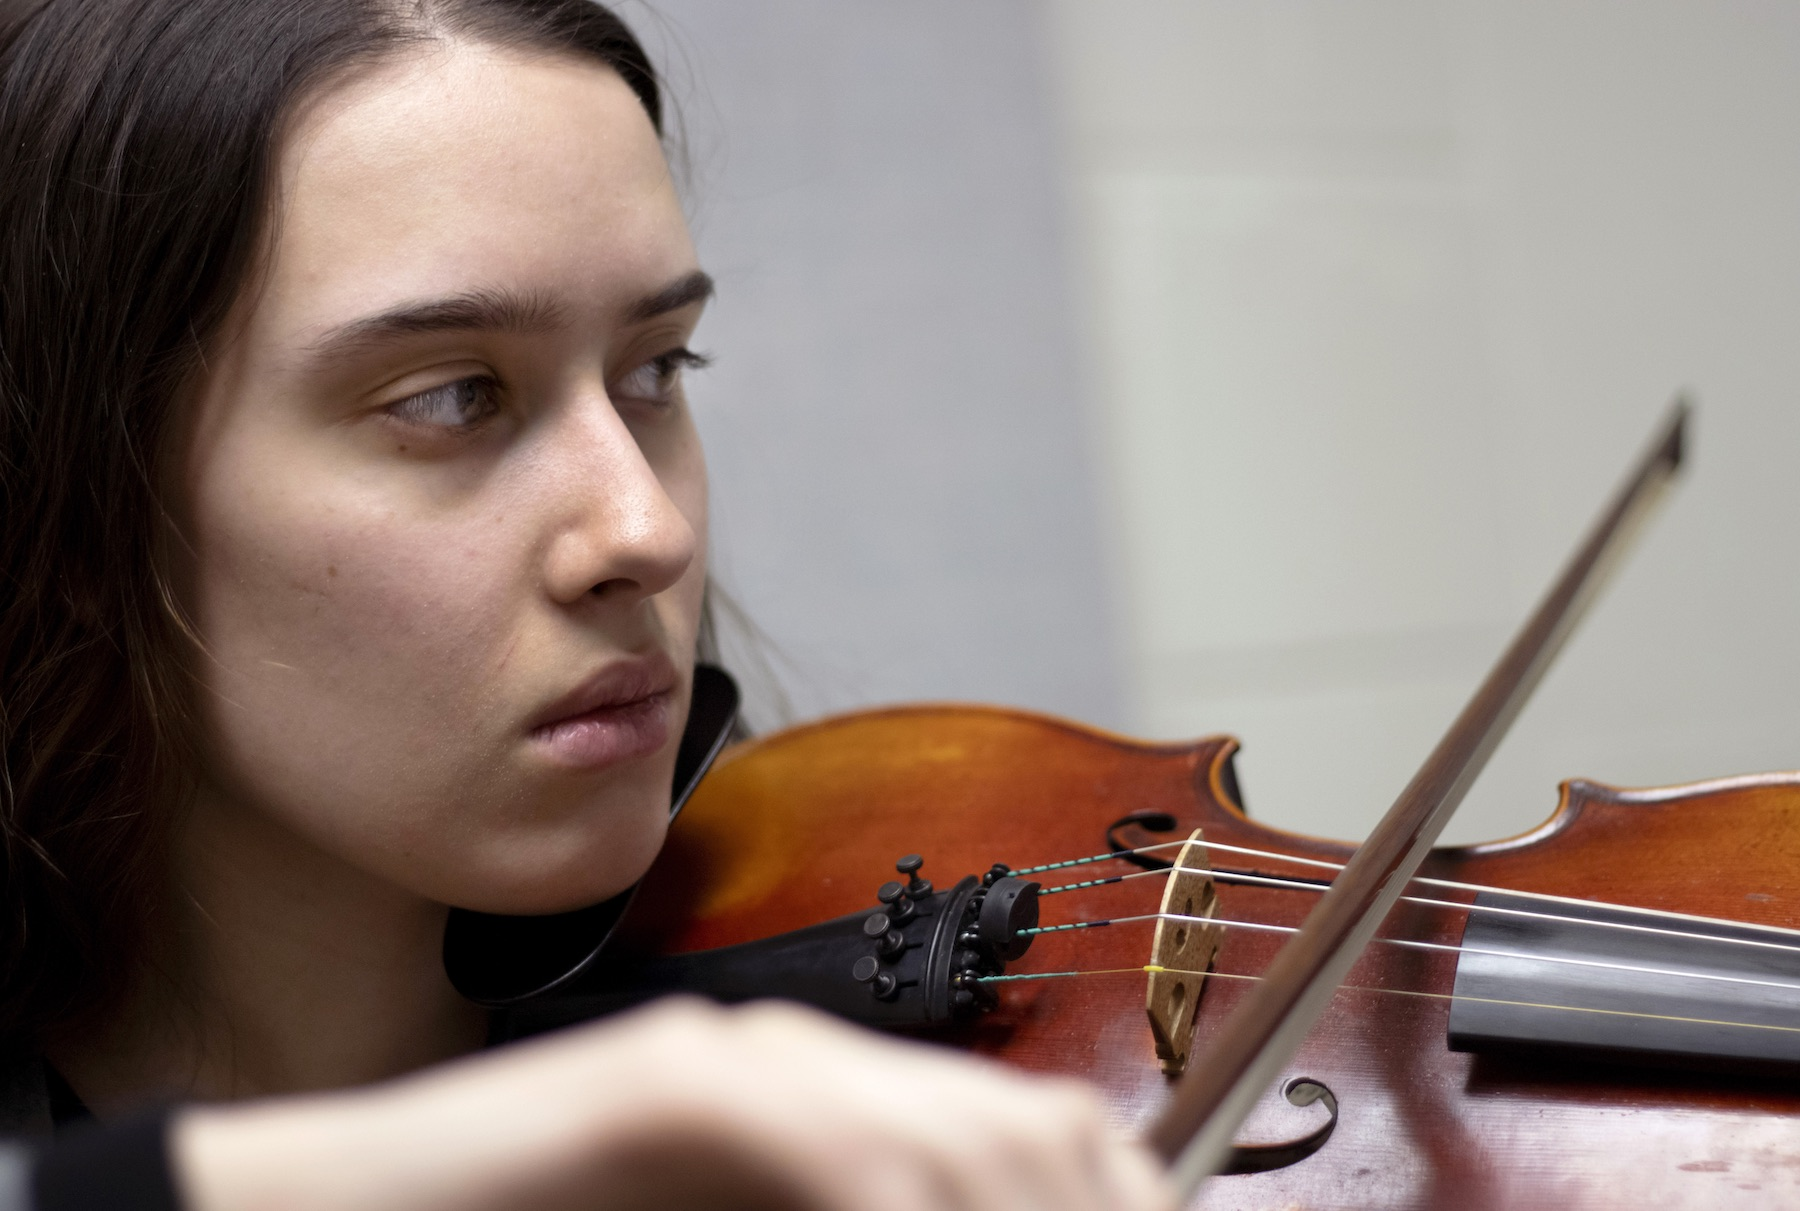 Rehanna Rexroat '20 plays the violin during a recent rehearsal session in Shattuck Hall.